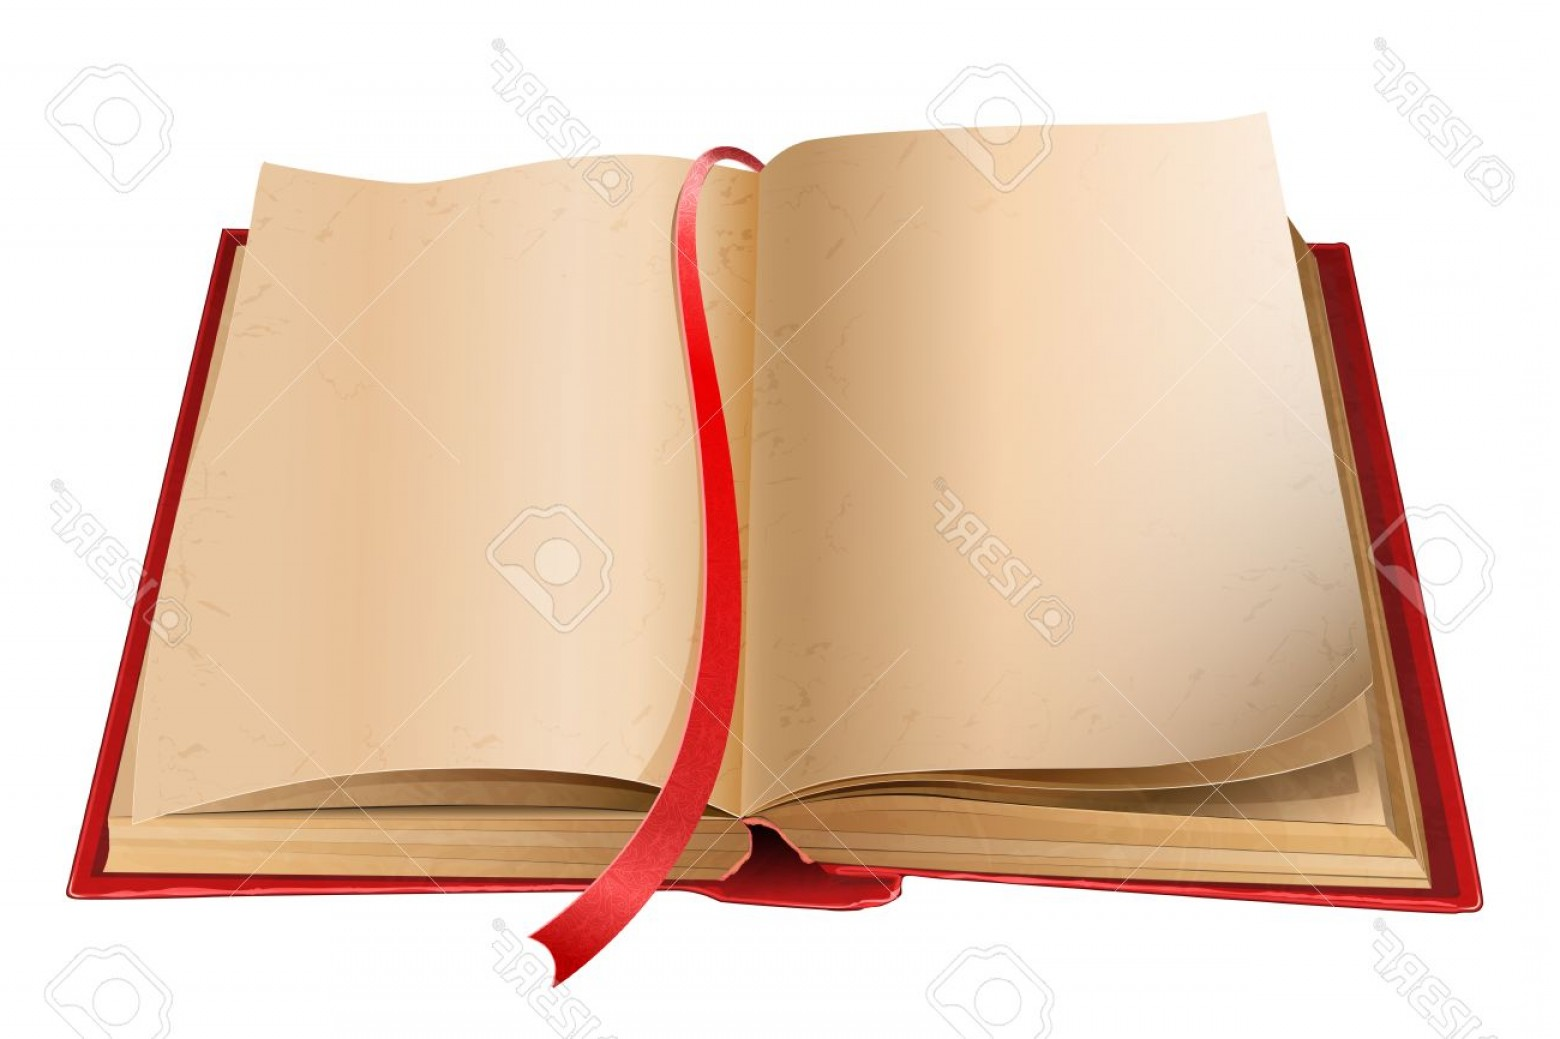 Cartoon Blank Open Book Vector: Photoold Open Book With Blank Pages Isolated On White Background